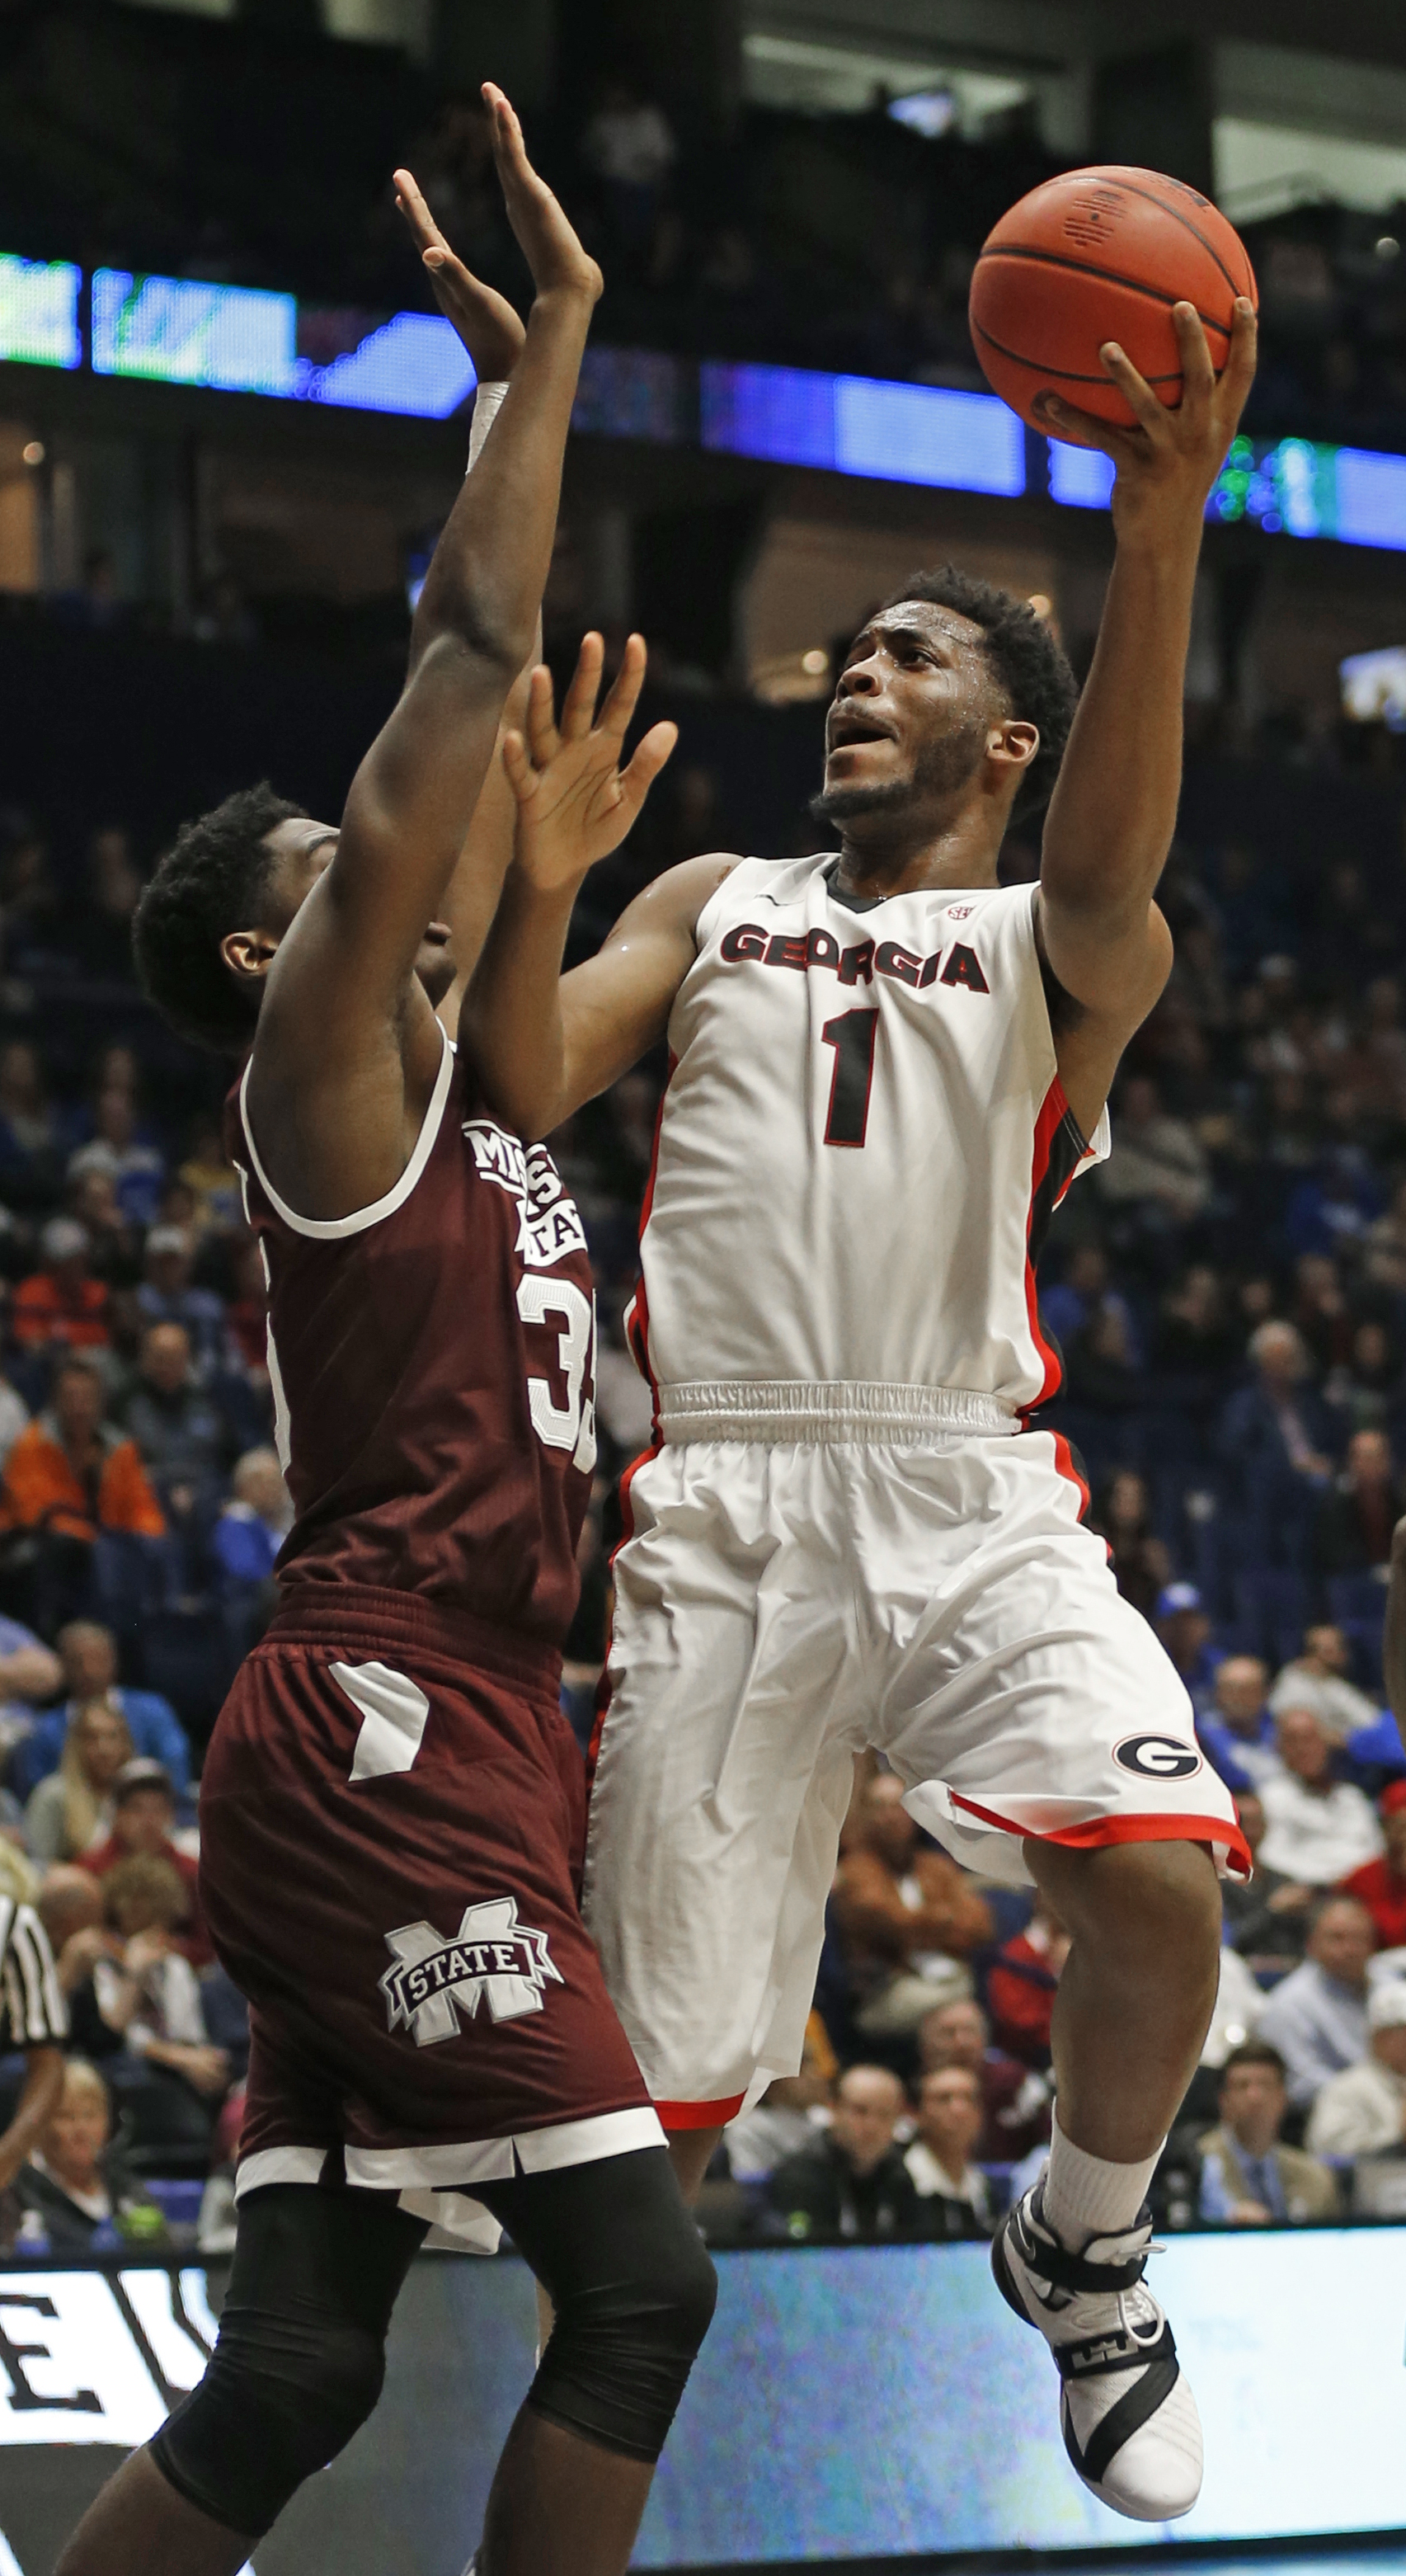 Georgia's Yante Maten (1) shoots over Mississippi State's Aric Holman (35) during the first half of an NCAA college basketball game in the Southeastern Conference tournament in Nashville, Tenn., Thursday, March 10, 2016. (AP Photo/John Bazemore)